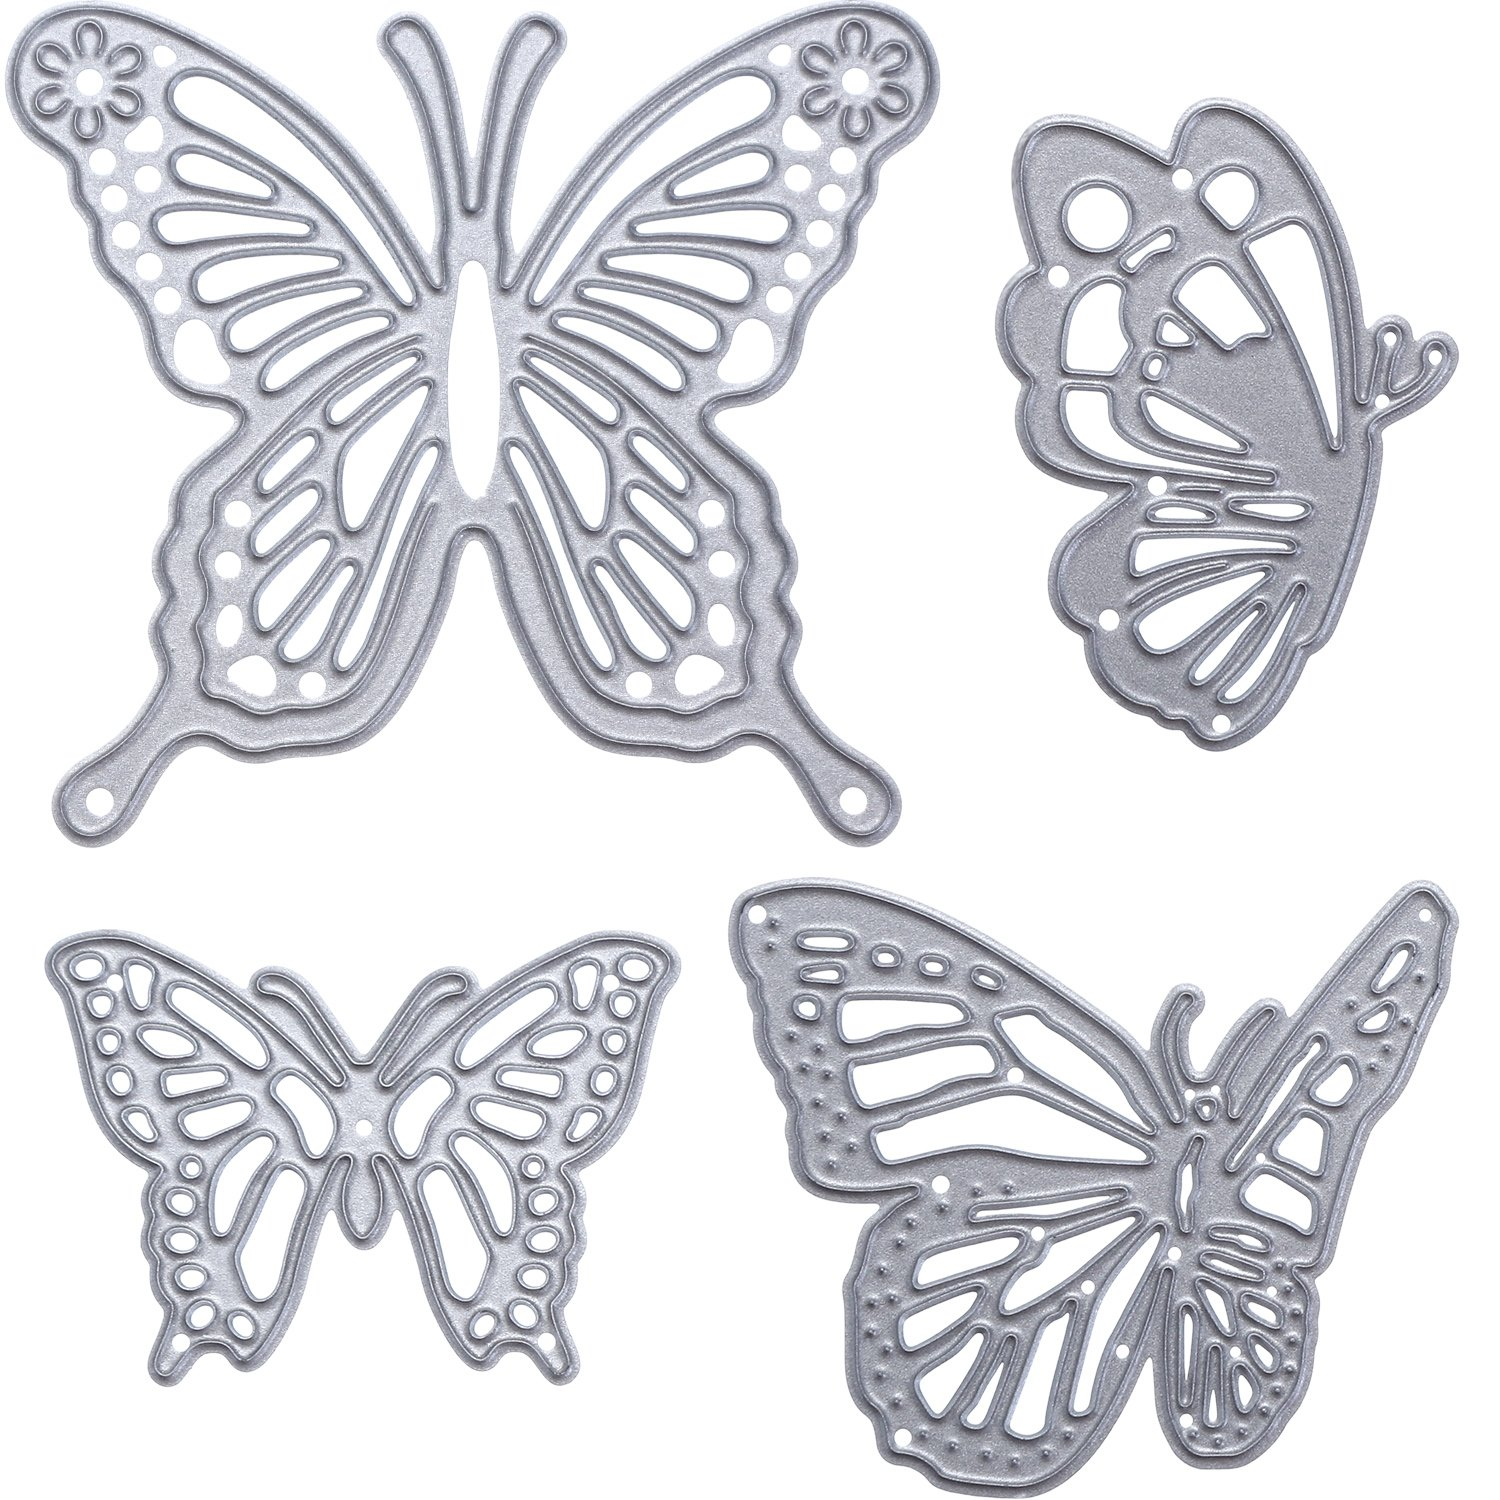 Gejoy 4 Pieces Butterfly Set Cutting Dies Metal Butterfly Die Embossing Stencils for Paper DIY Craft Decoration